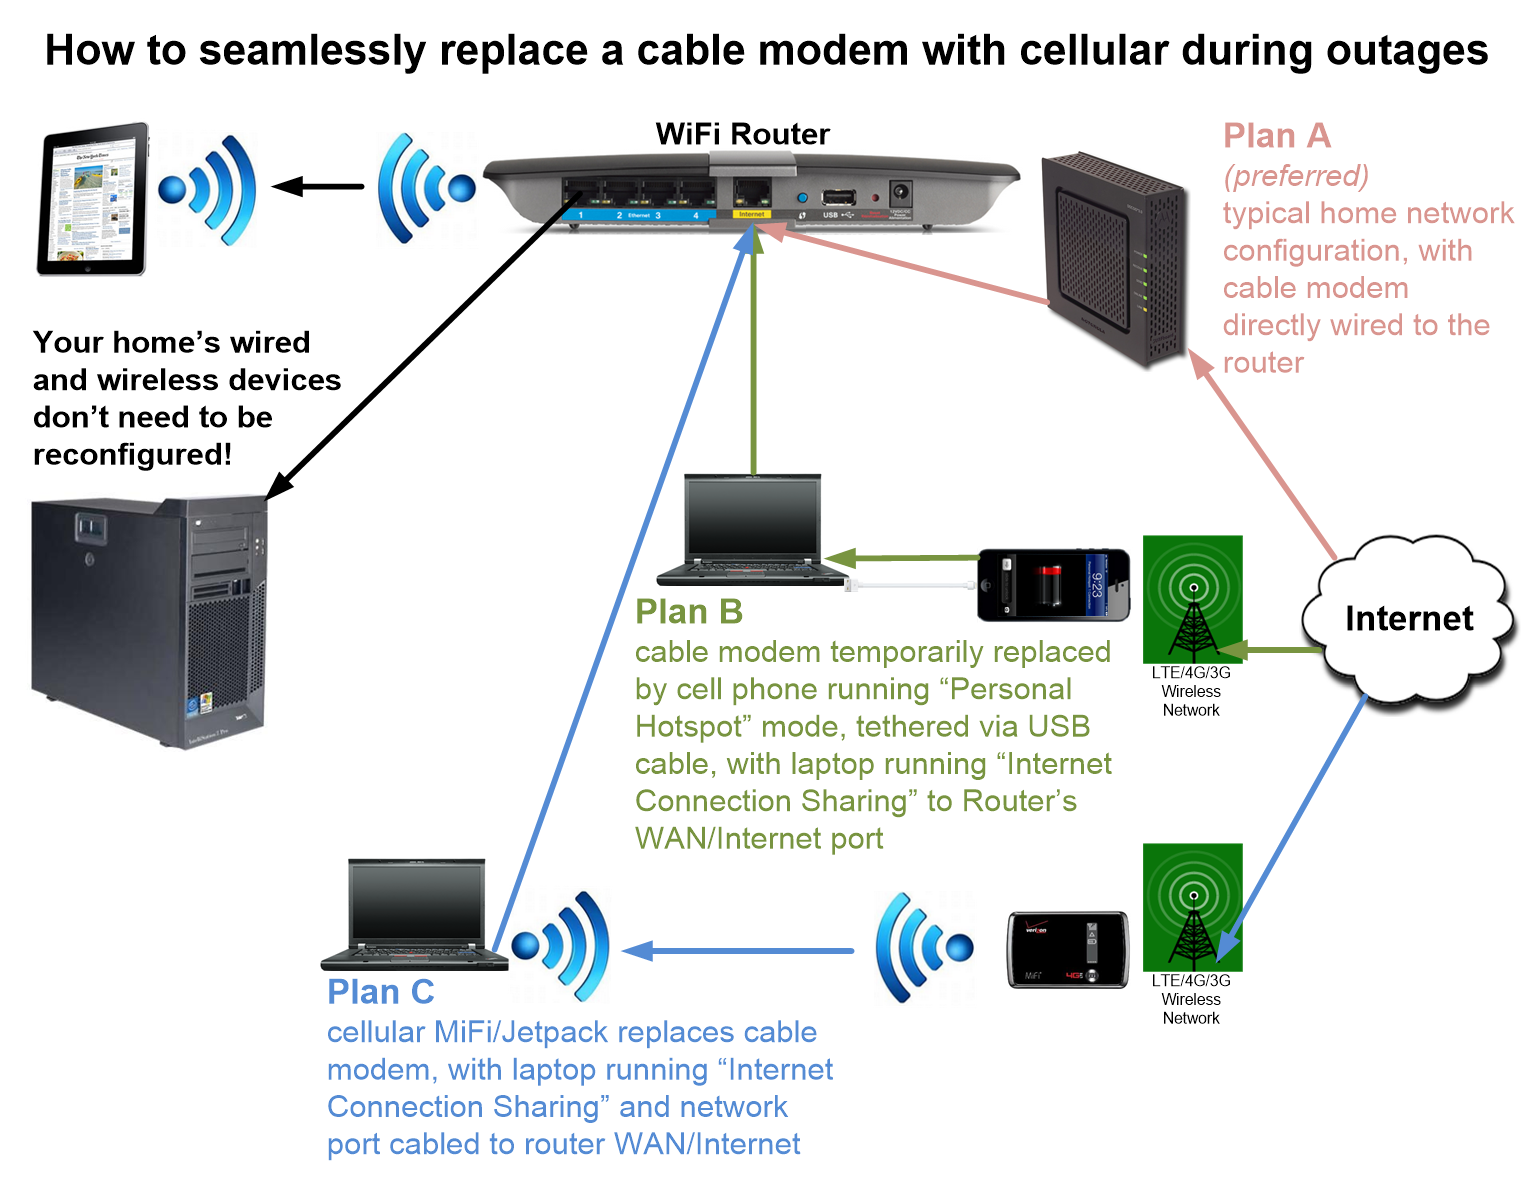 Motorola Ethernet Wiring Diagram Detailed Schematics Connection Through House Home Networking Pfsense Cable Modems D Link Routers And Rs 422